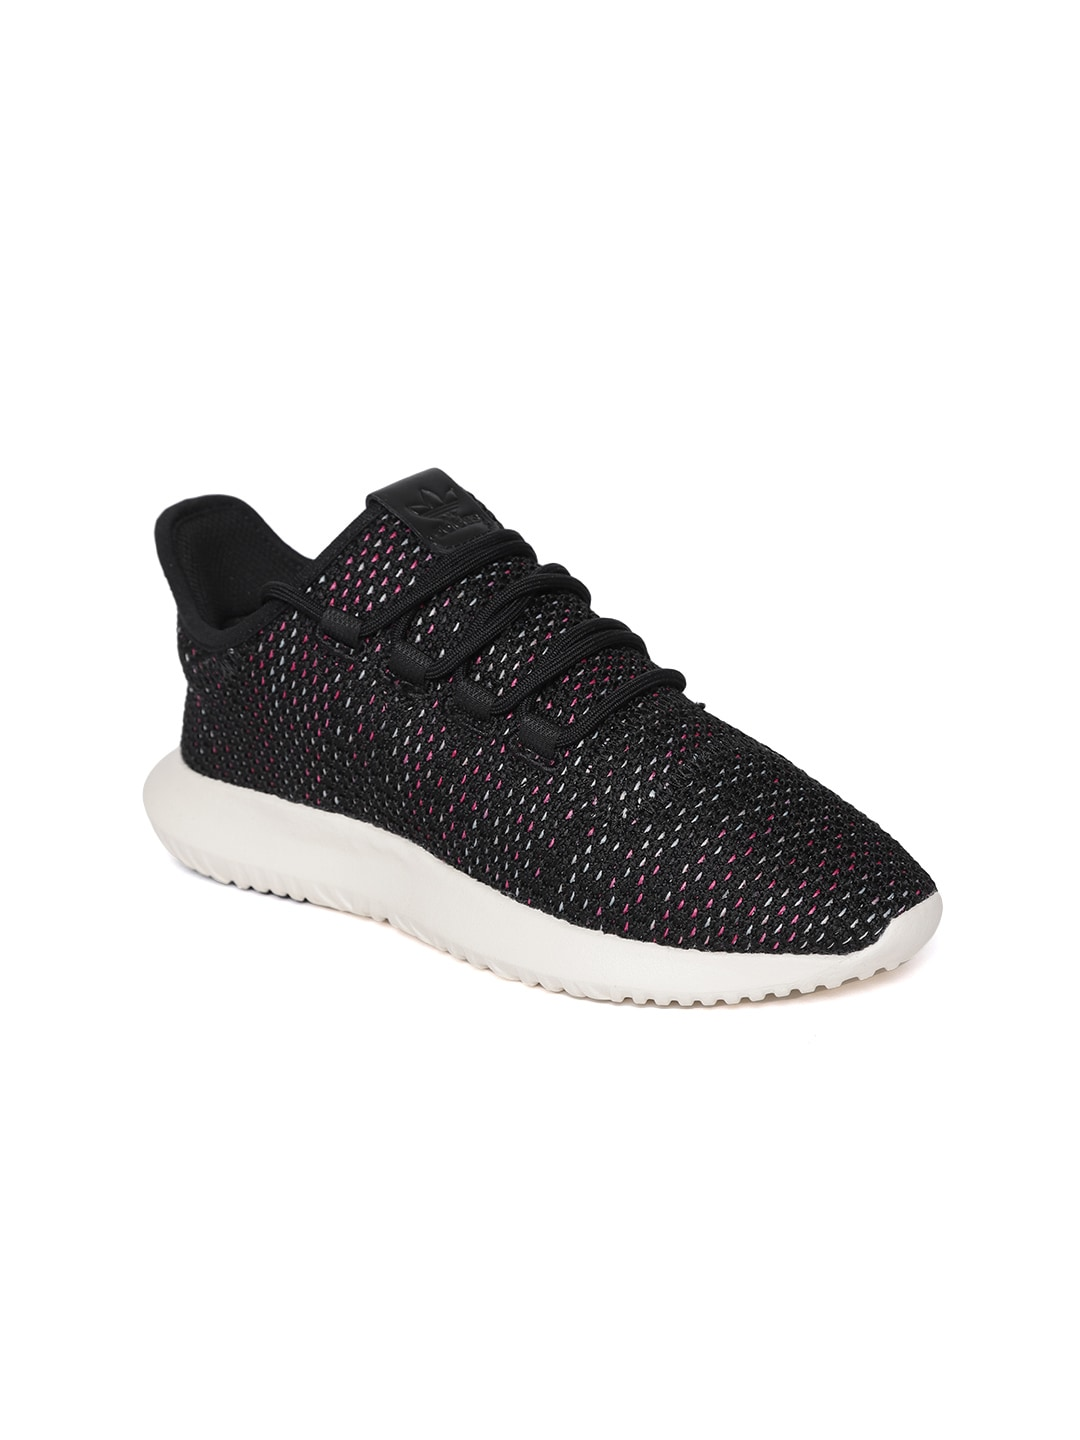 f1315576959 Adidas Originals Tubular - Buy Adidas Originals Tubular online in India